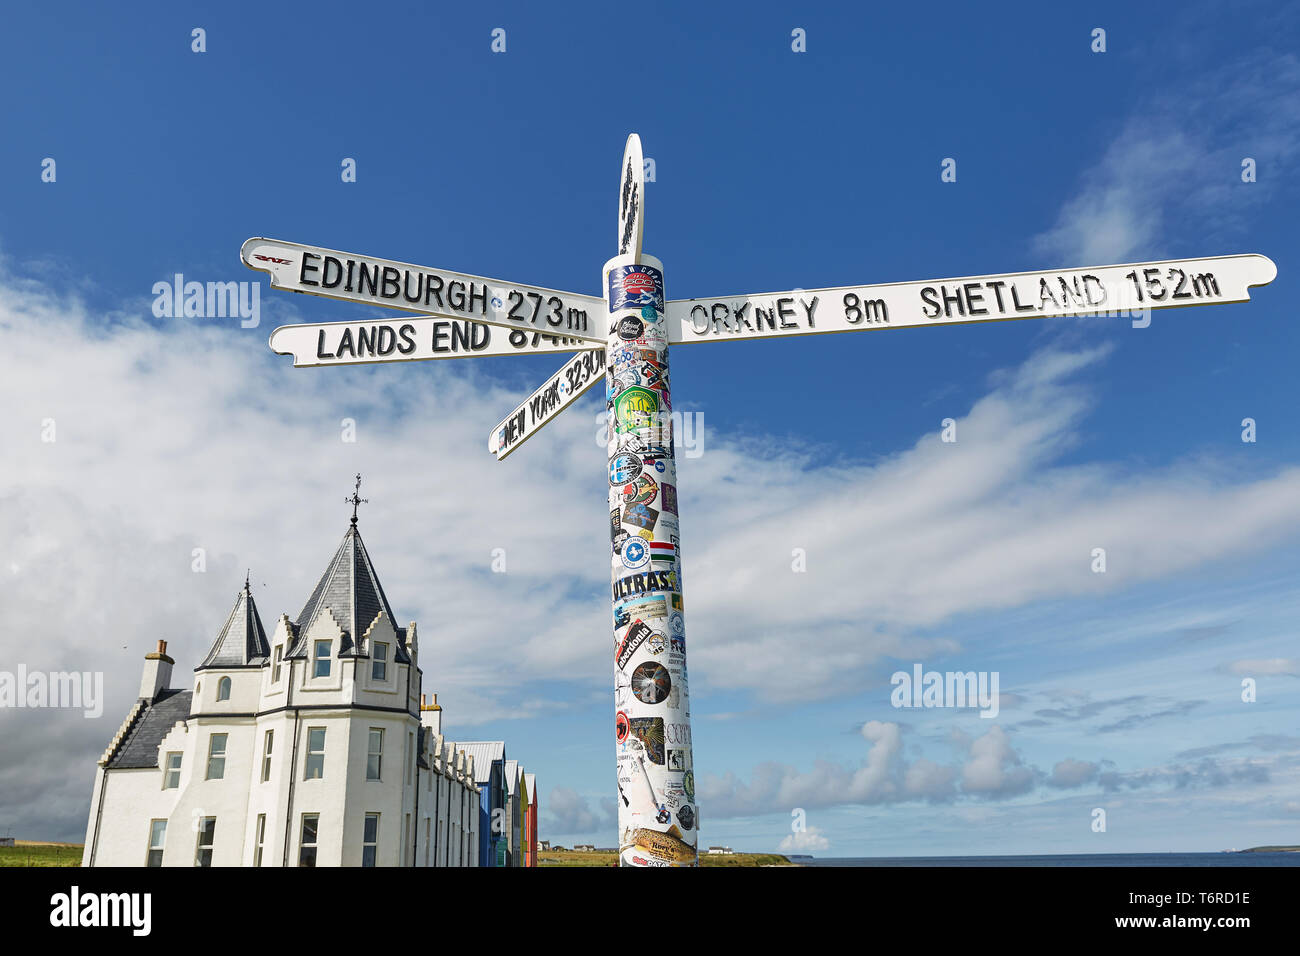 JOHN O'GROAT'S, SCOTLAND - AUGUST 08 2017: Britains lands end sign at john o'groats in scotland with blue skies and ocean and grass in background. Has Stock Photo